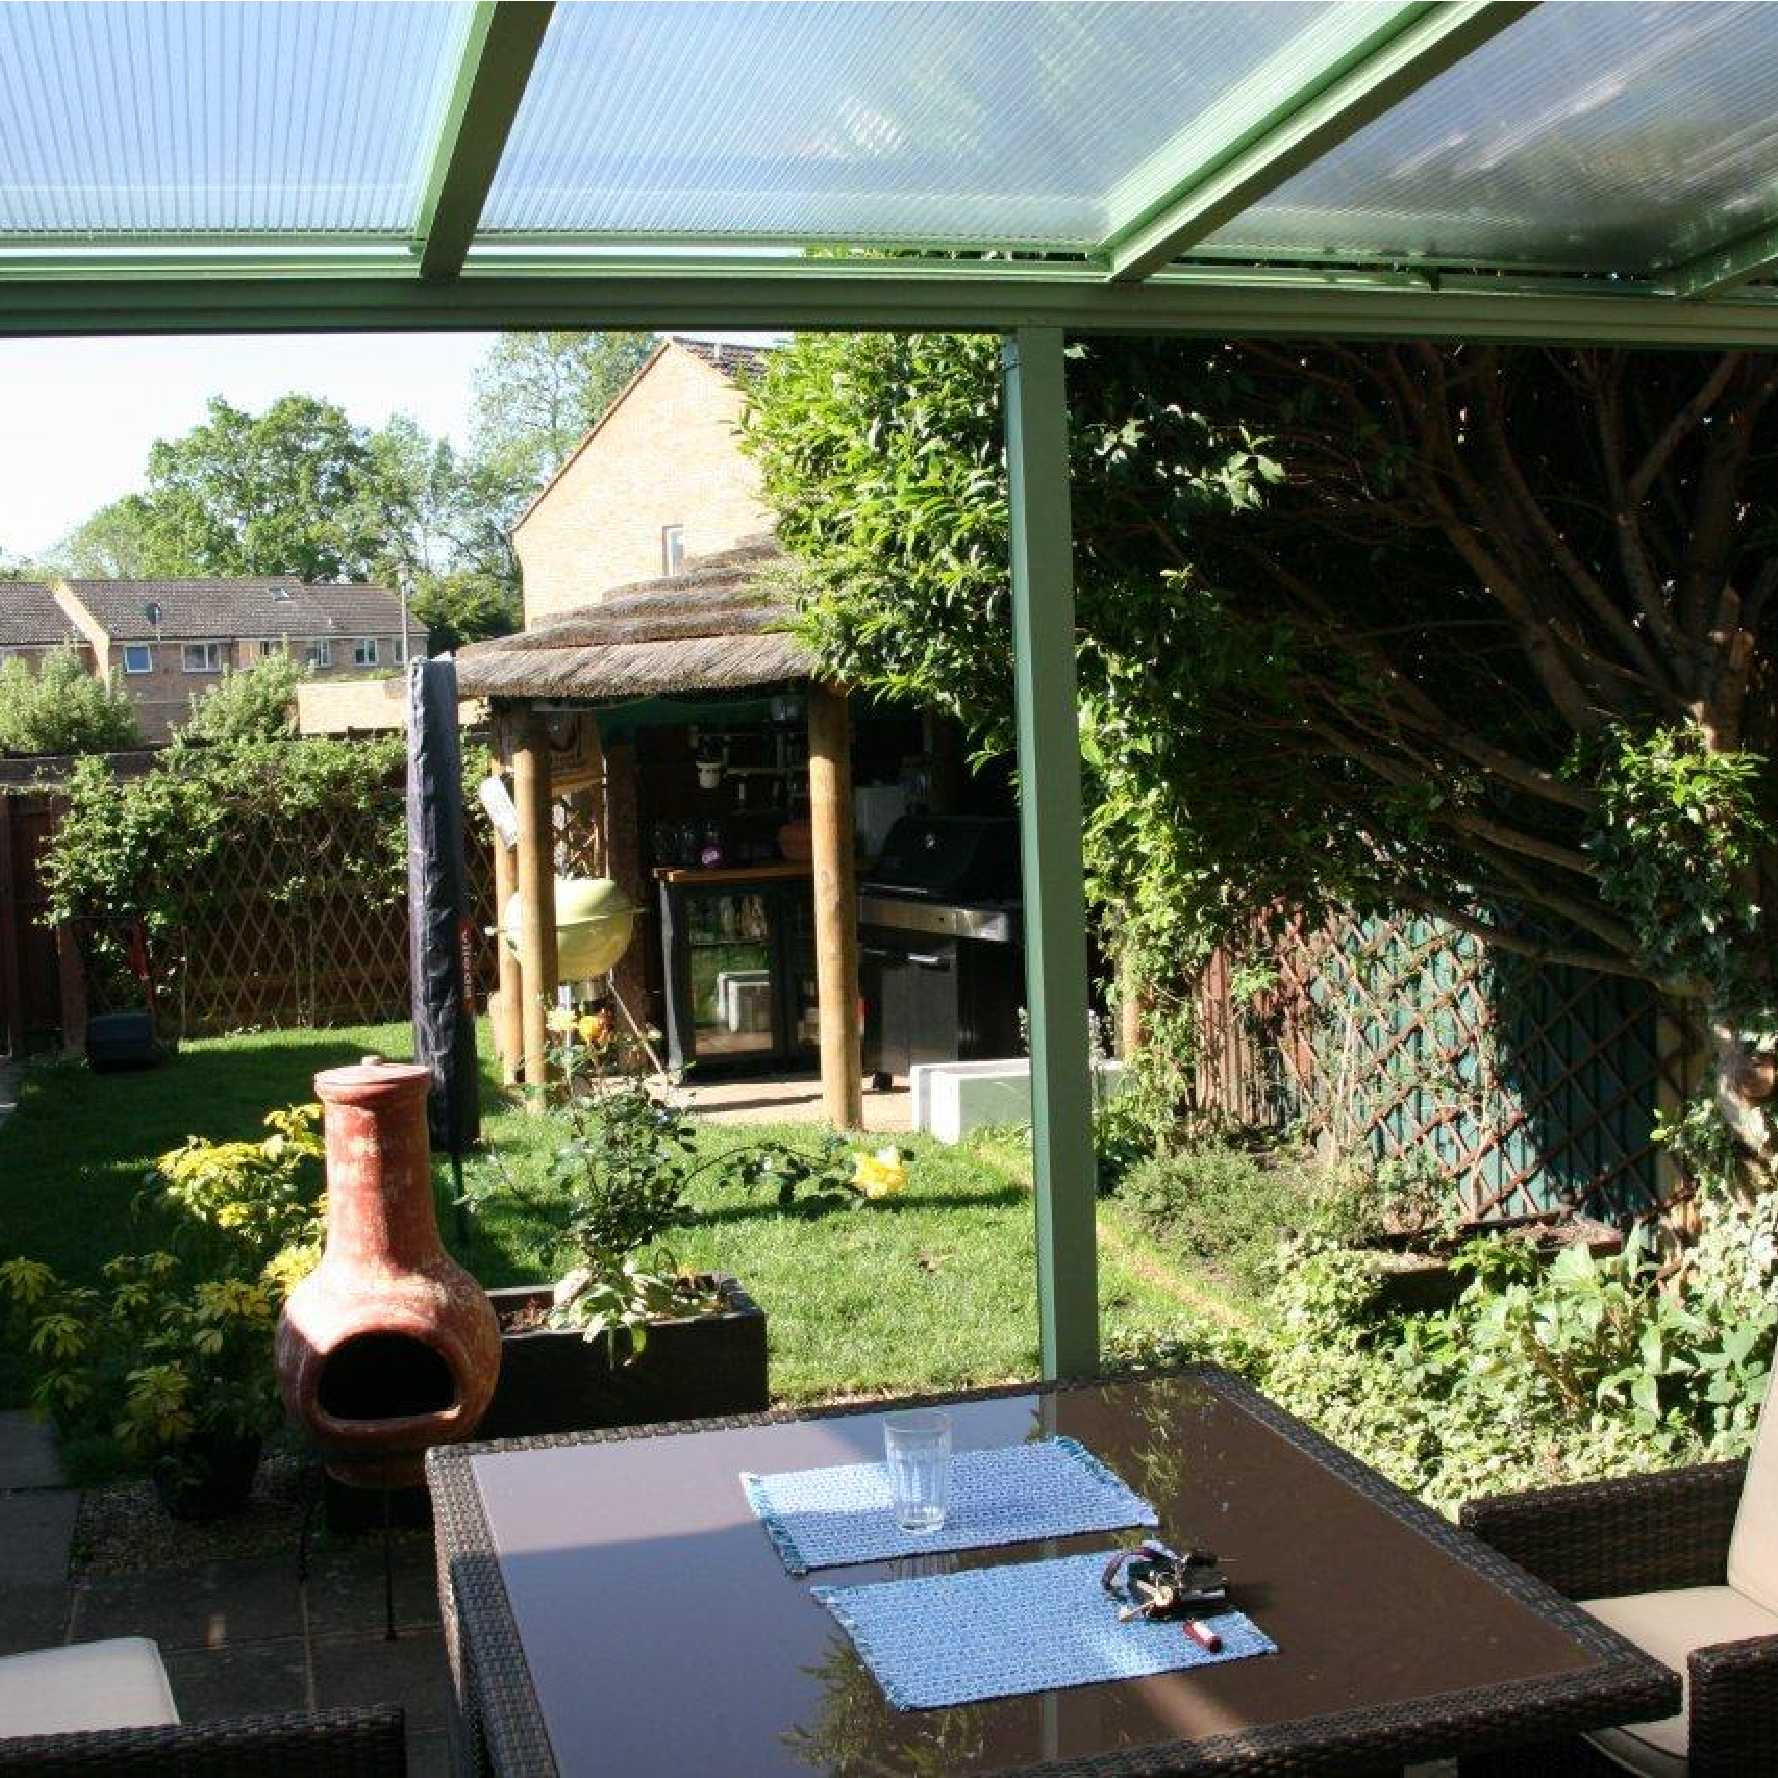 Affordable Omega Smart White Lean-To Canopy with 16mm Polycarbonate Glazing - 12.0m (W) x 3.5m (P), (5) Supporting Posts